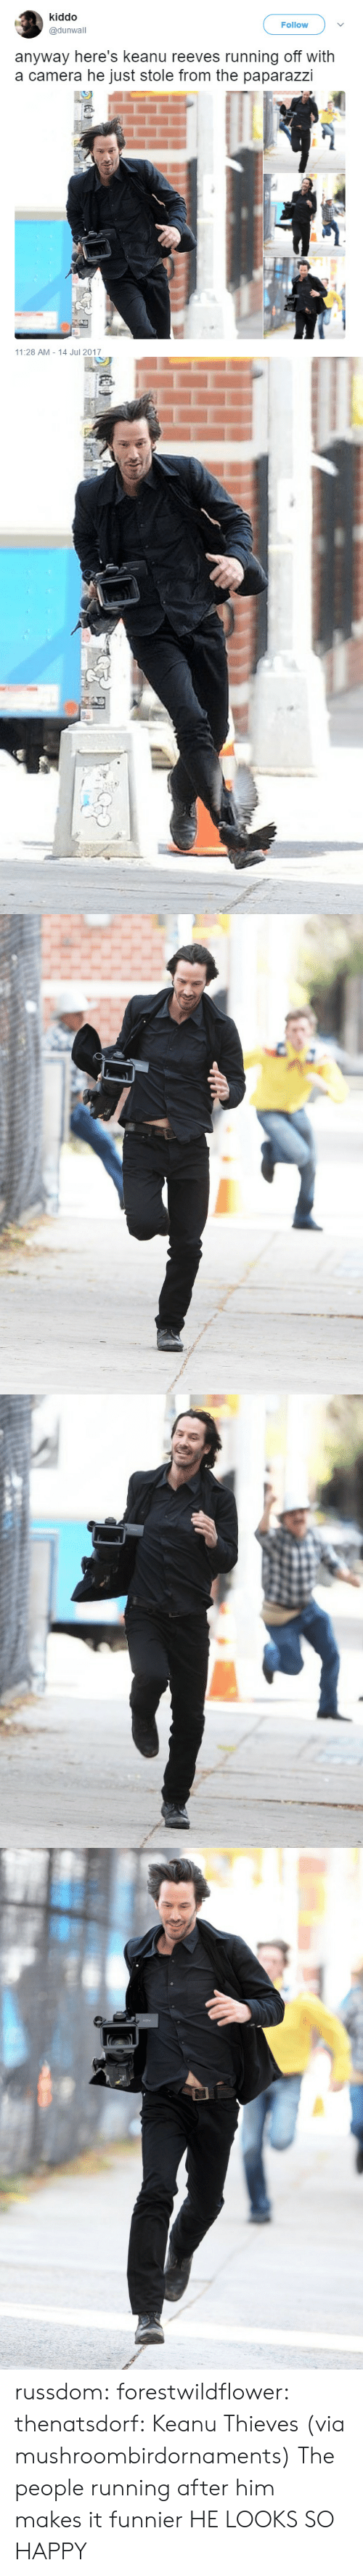 Target, Tumblr, and Blog: kiddo  @dunwall  Follow  anyway here's keanu reeves running off with  a camera he just stole from the paparazzi  11:28 AM 14 Jul 2017 russdom: forestwildflower:  thenatsdorf: Keanu Thieves (via mushroombirdornaments)  The people running after him makes it funnier  HE LOOKS SO HAPPY